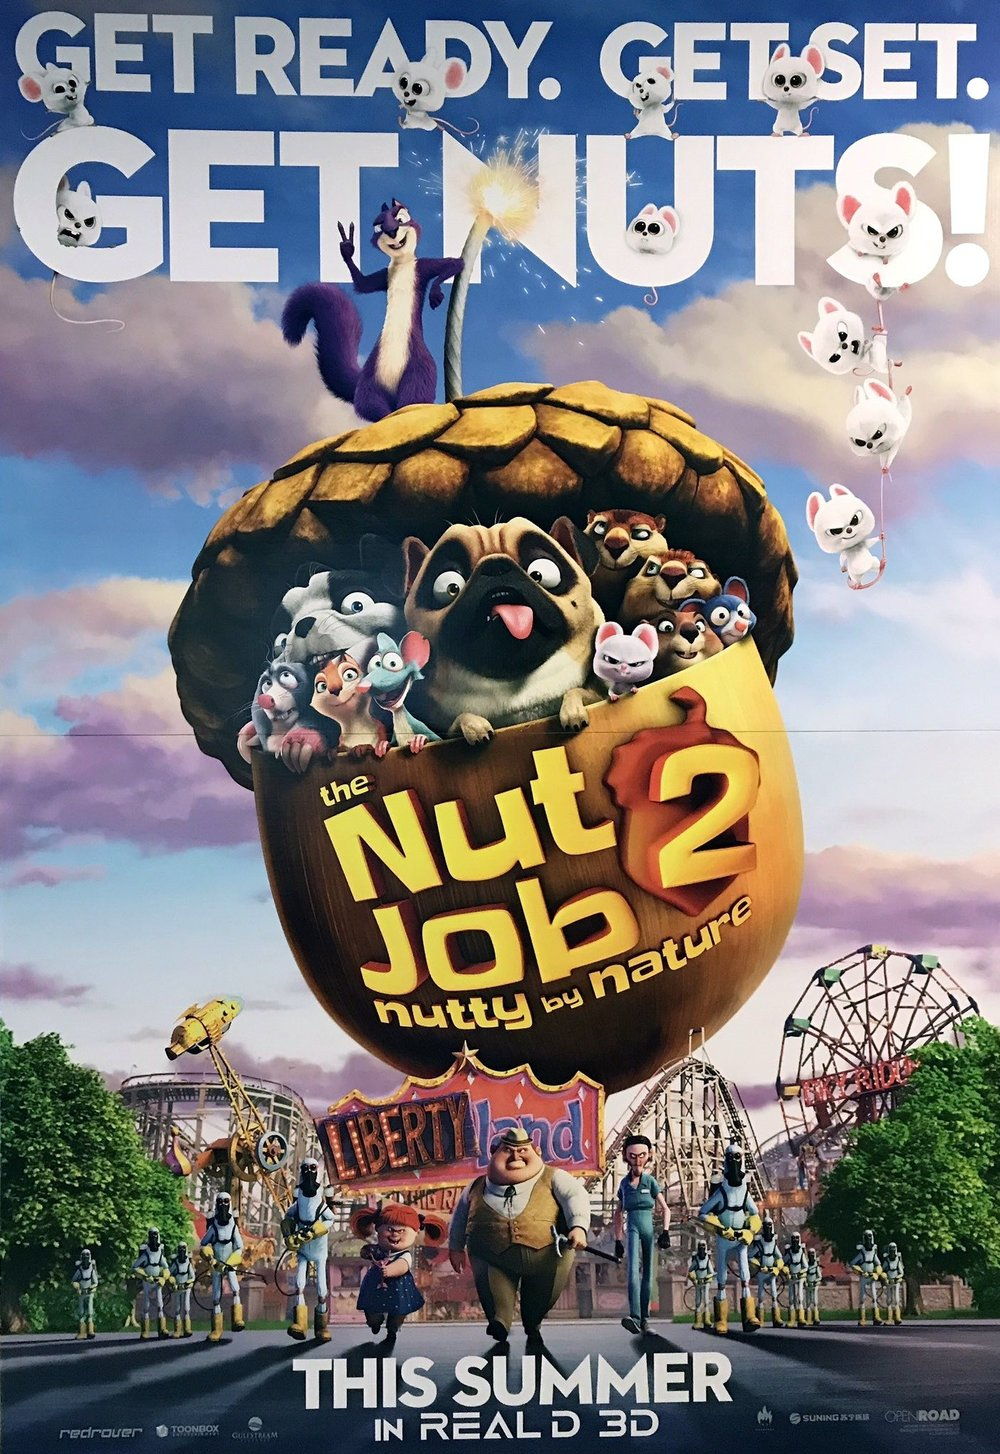 THE NUT JOB 2: NUTTY BY NATURE PG   12:45pm2:45pm4:45pm7:15pm9:30pm  Family / Animated ‧ 1h 31m